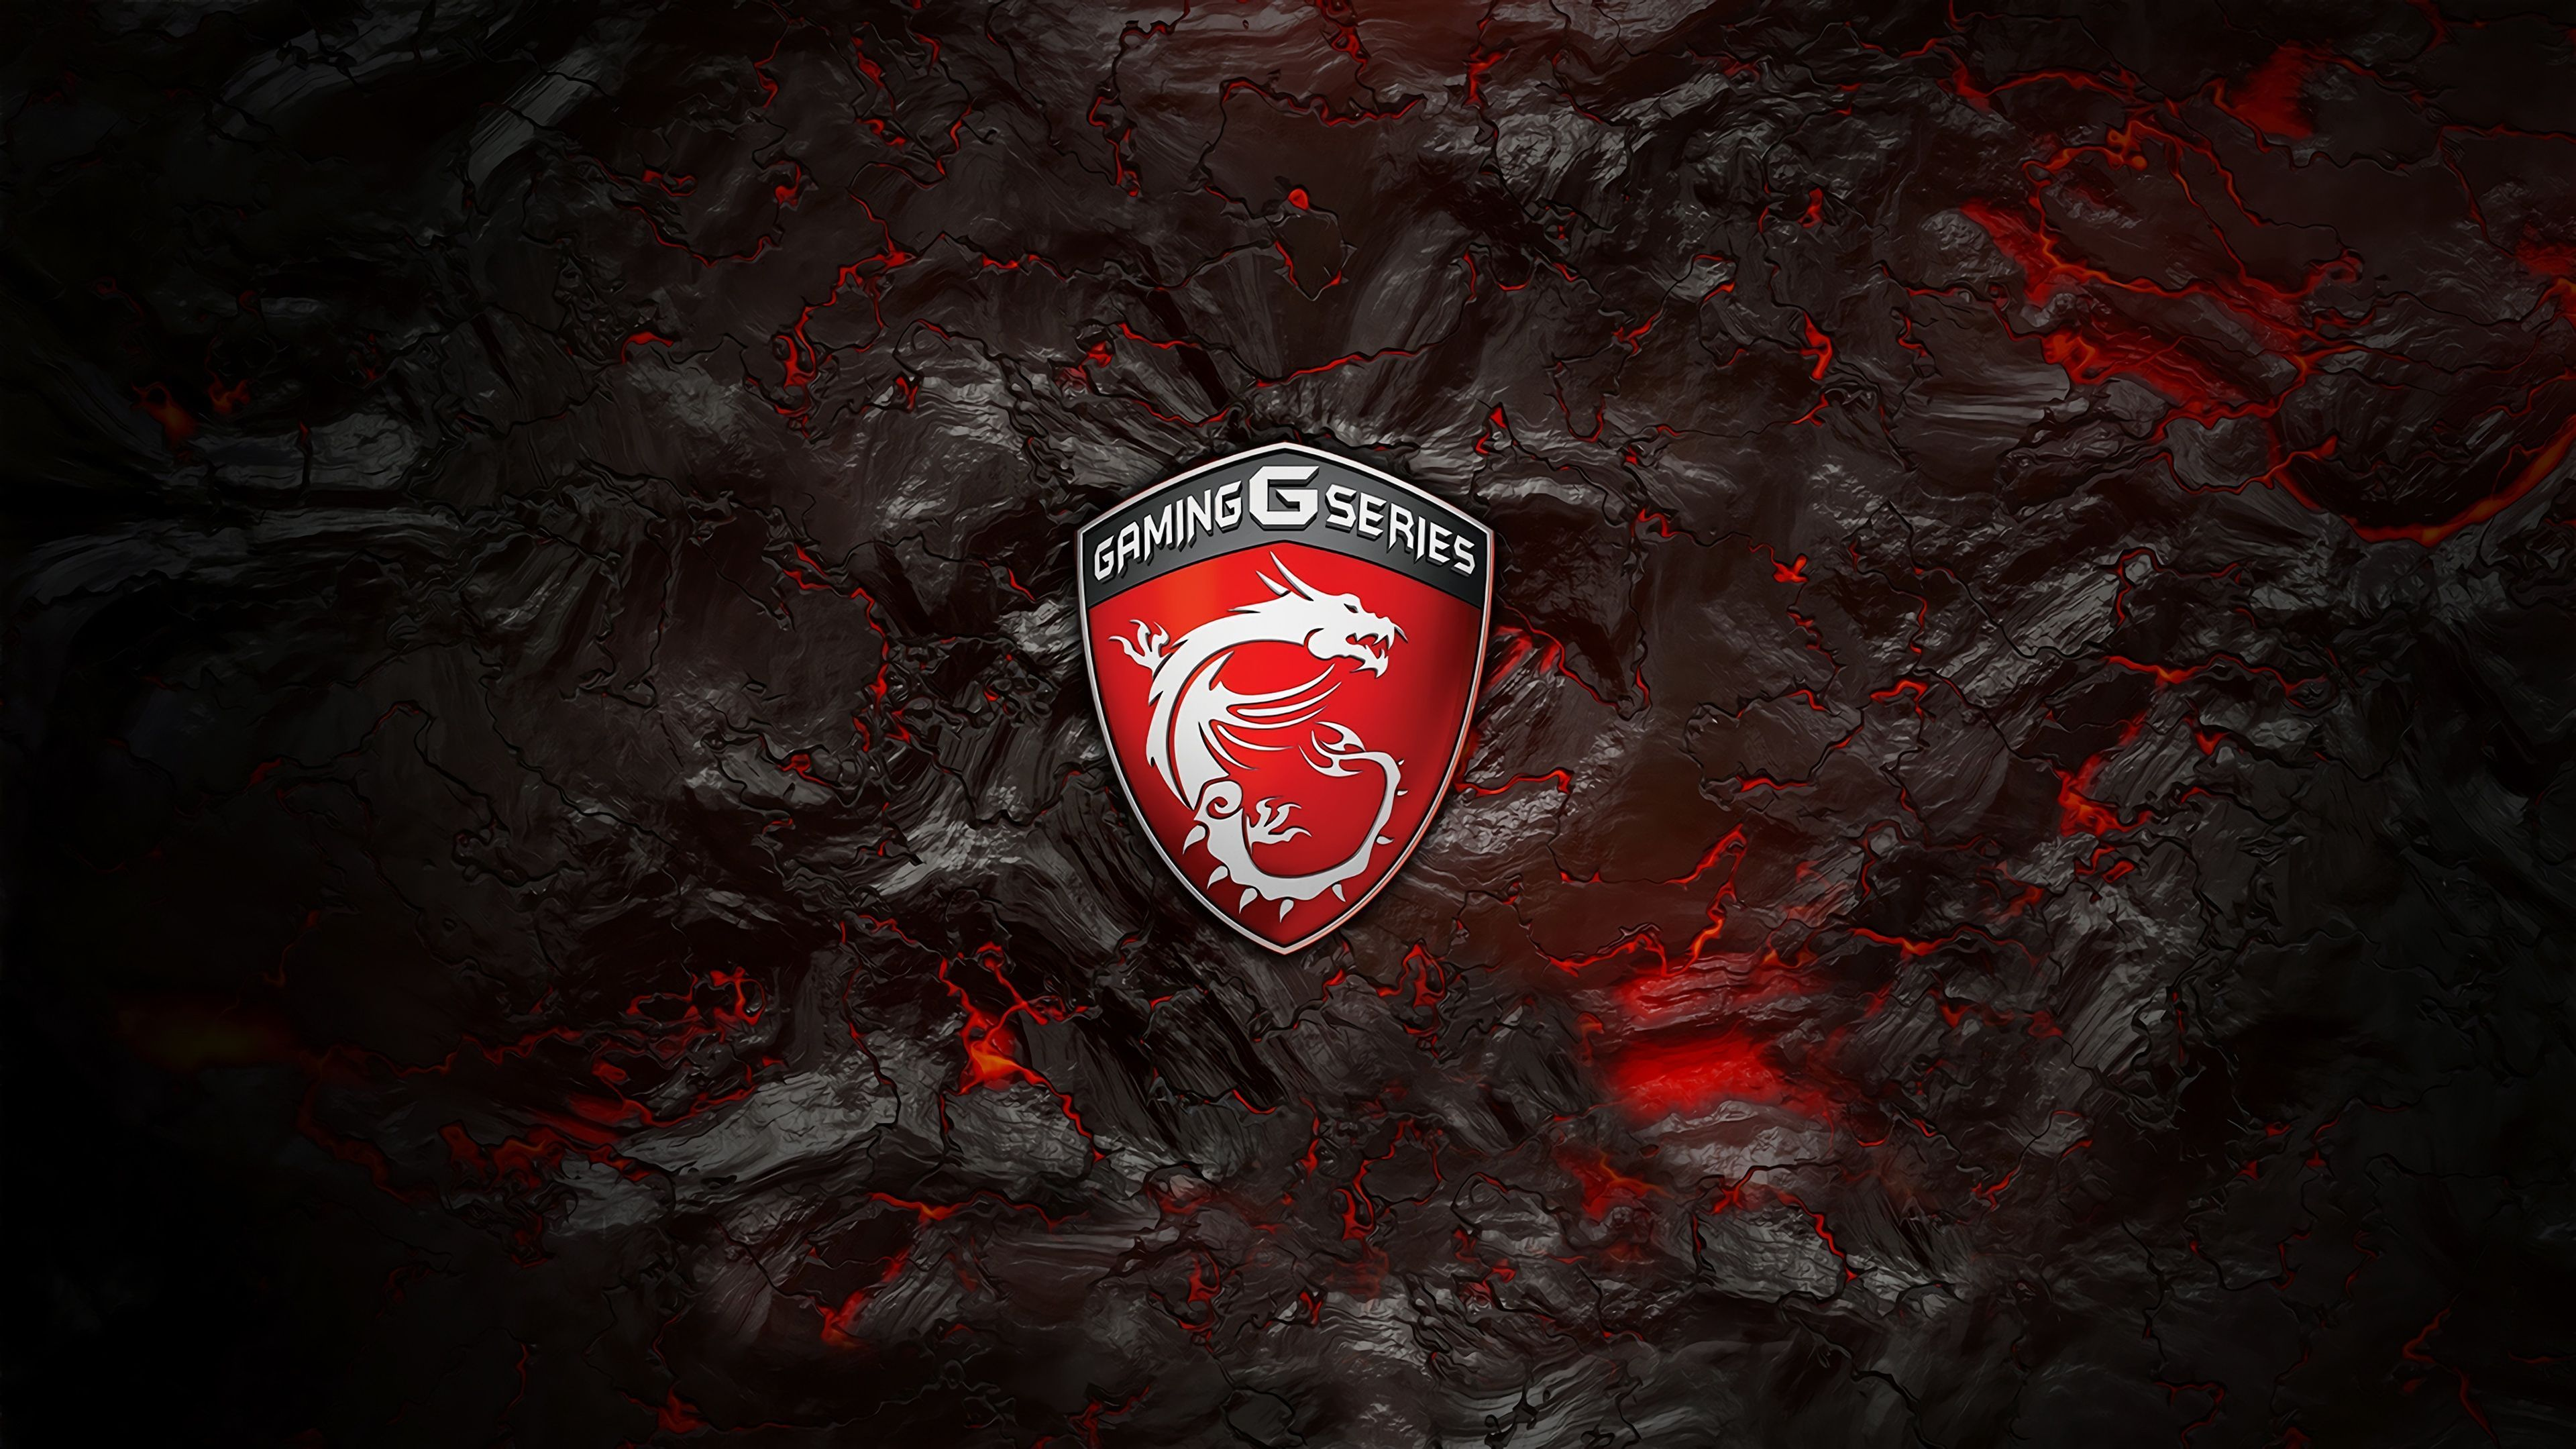 Msi 4k Wallpapers Top Free Msi 4k Backgrounds Wallpaperaccess In 2020 Wallpaper Pc Msi Logo Technology Wallpaper